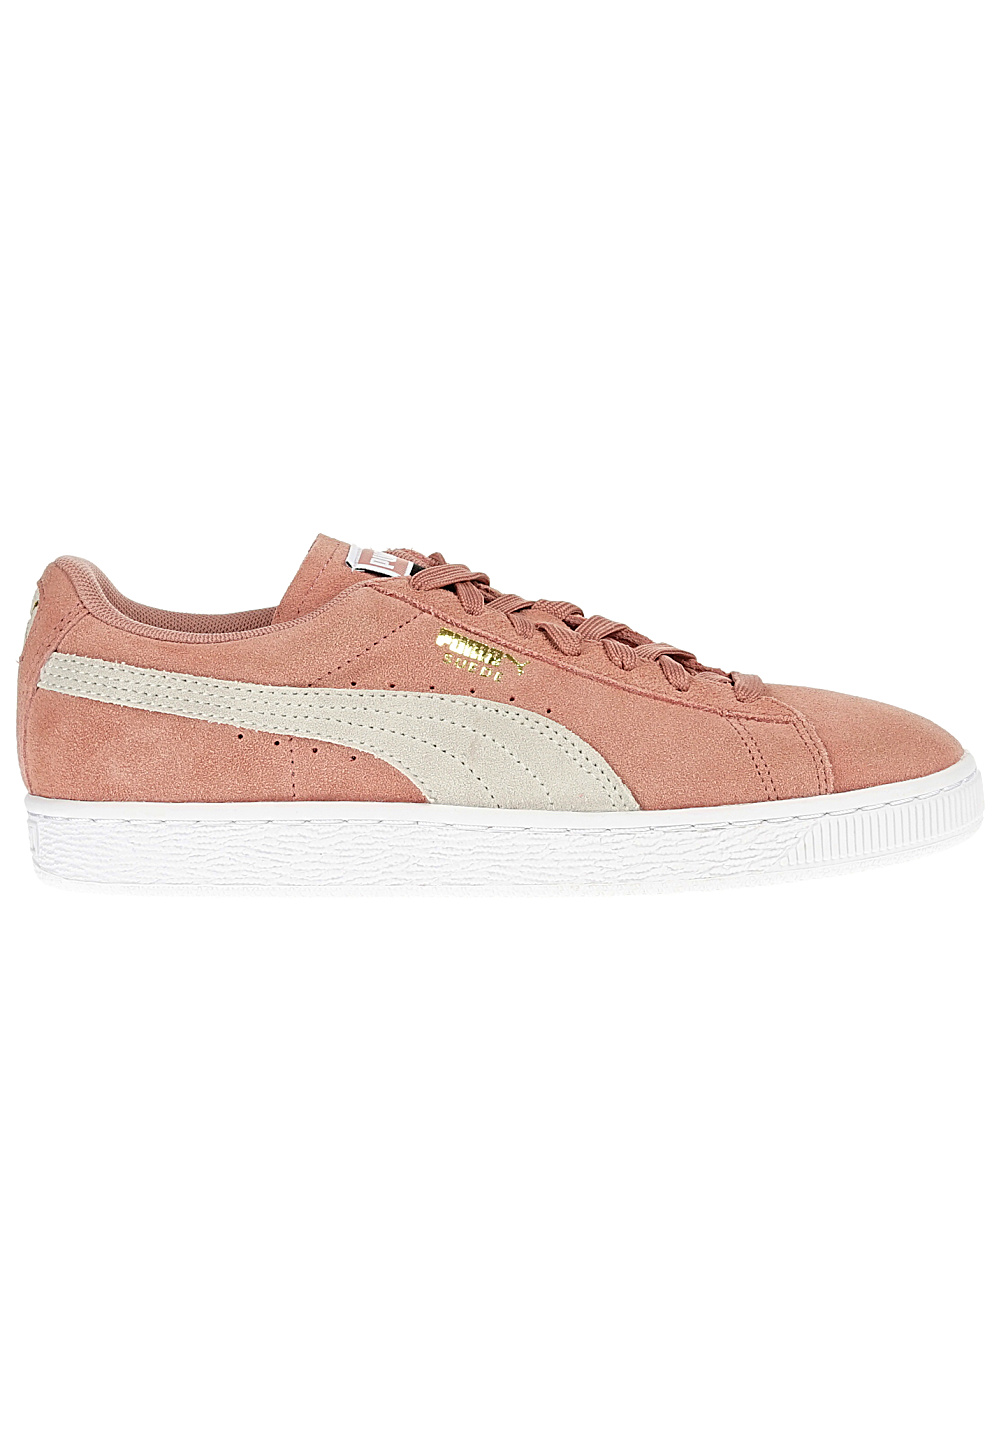 sports shoes af246 c5dc9 Puma Suede Classic - Sneakers for Women - Pink